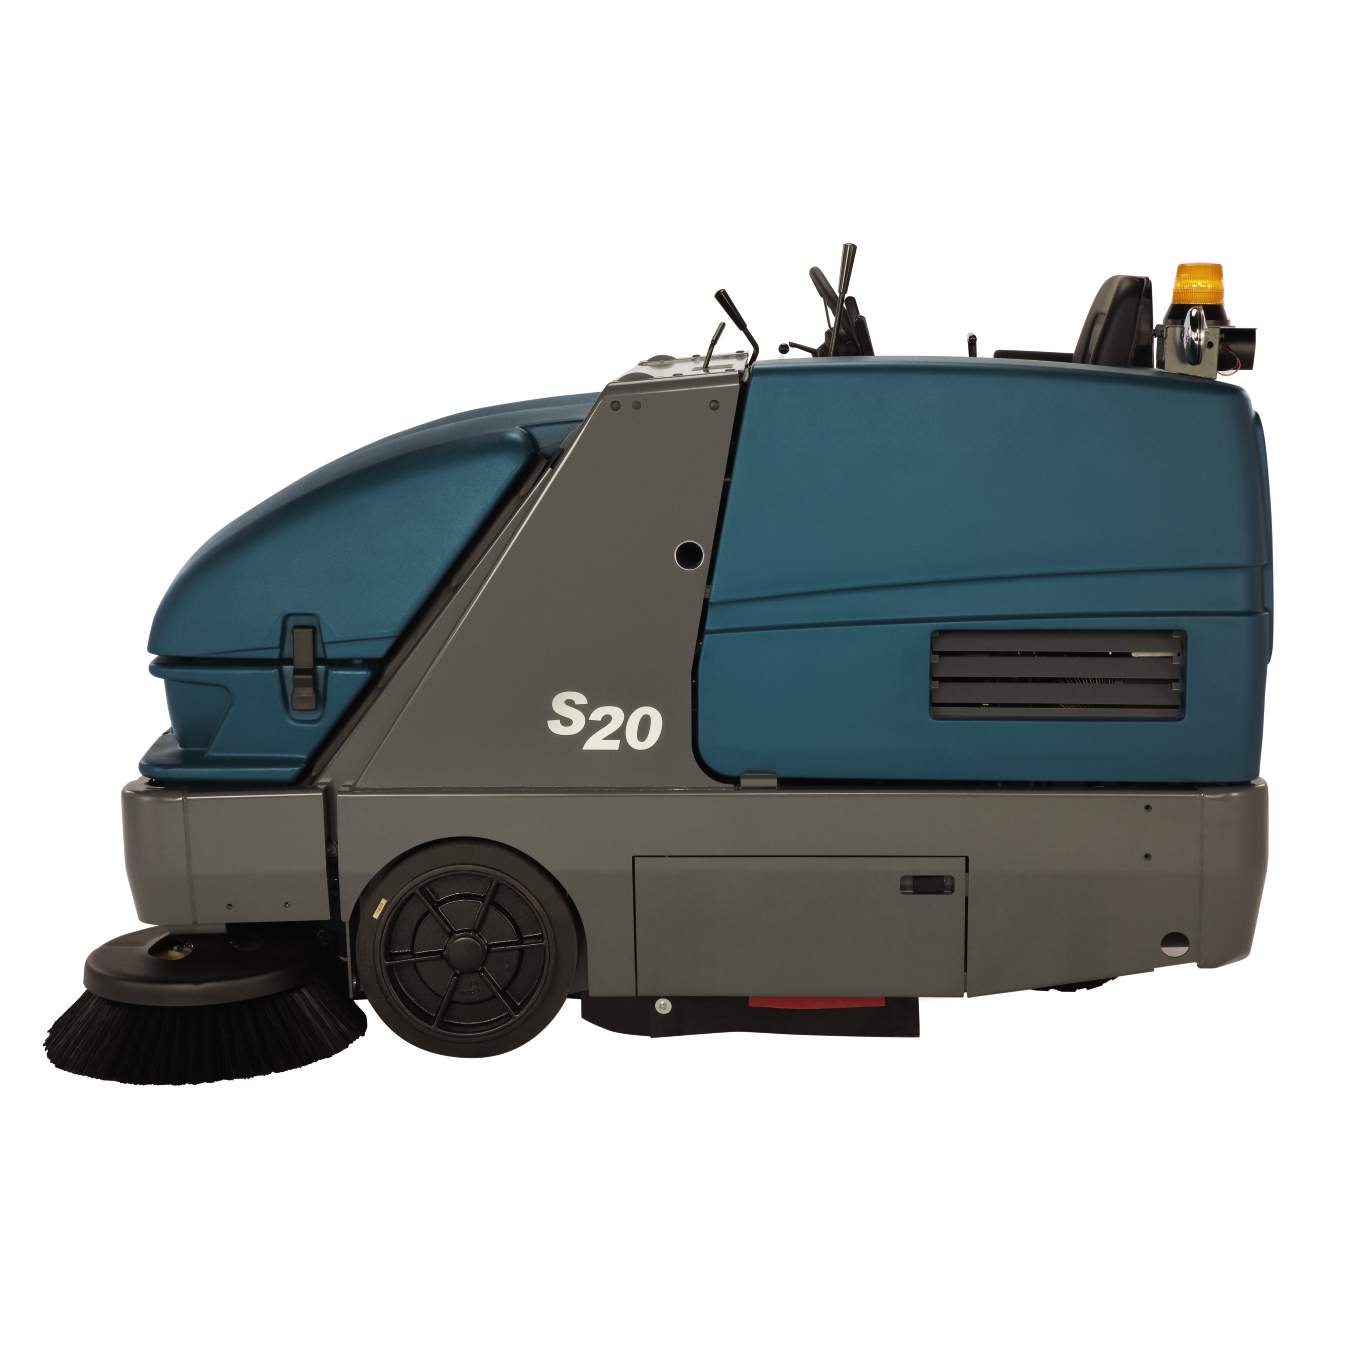 S20 Compact Mid Sized Rider Sweeper Quality Cleaning